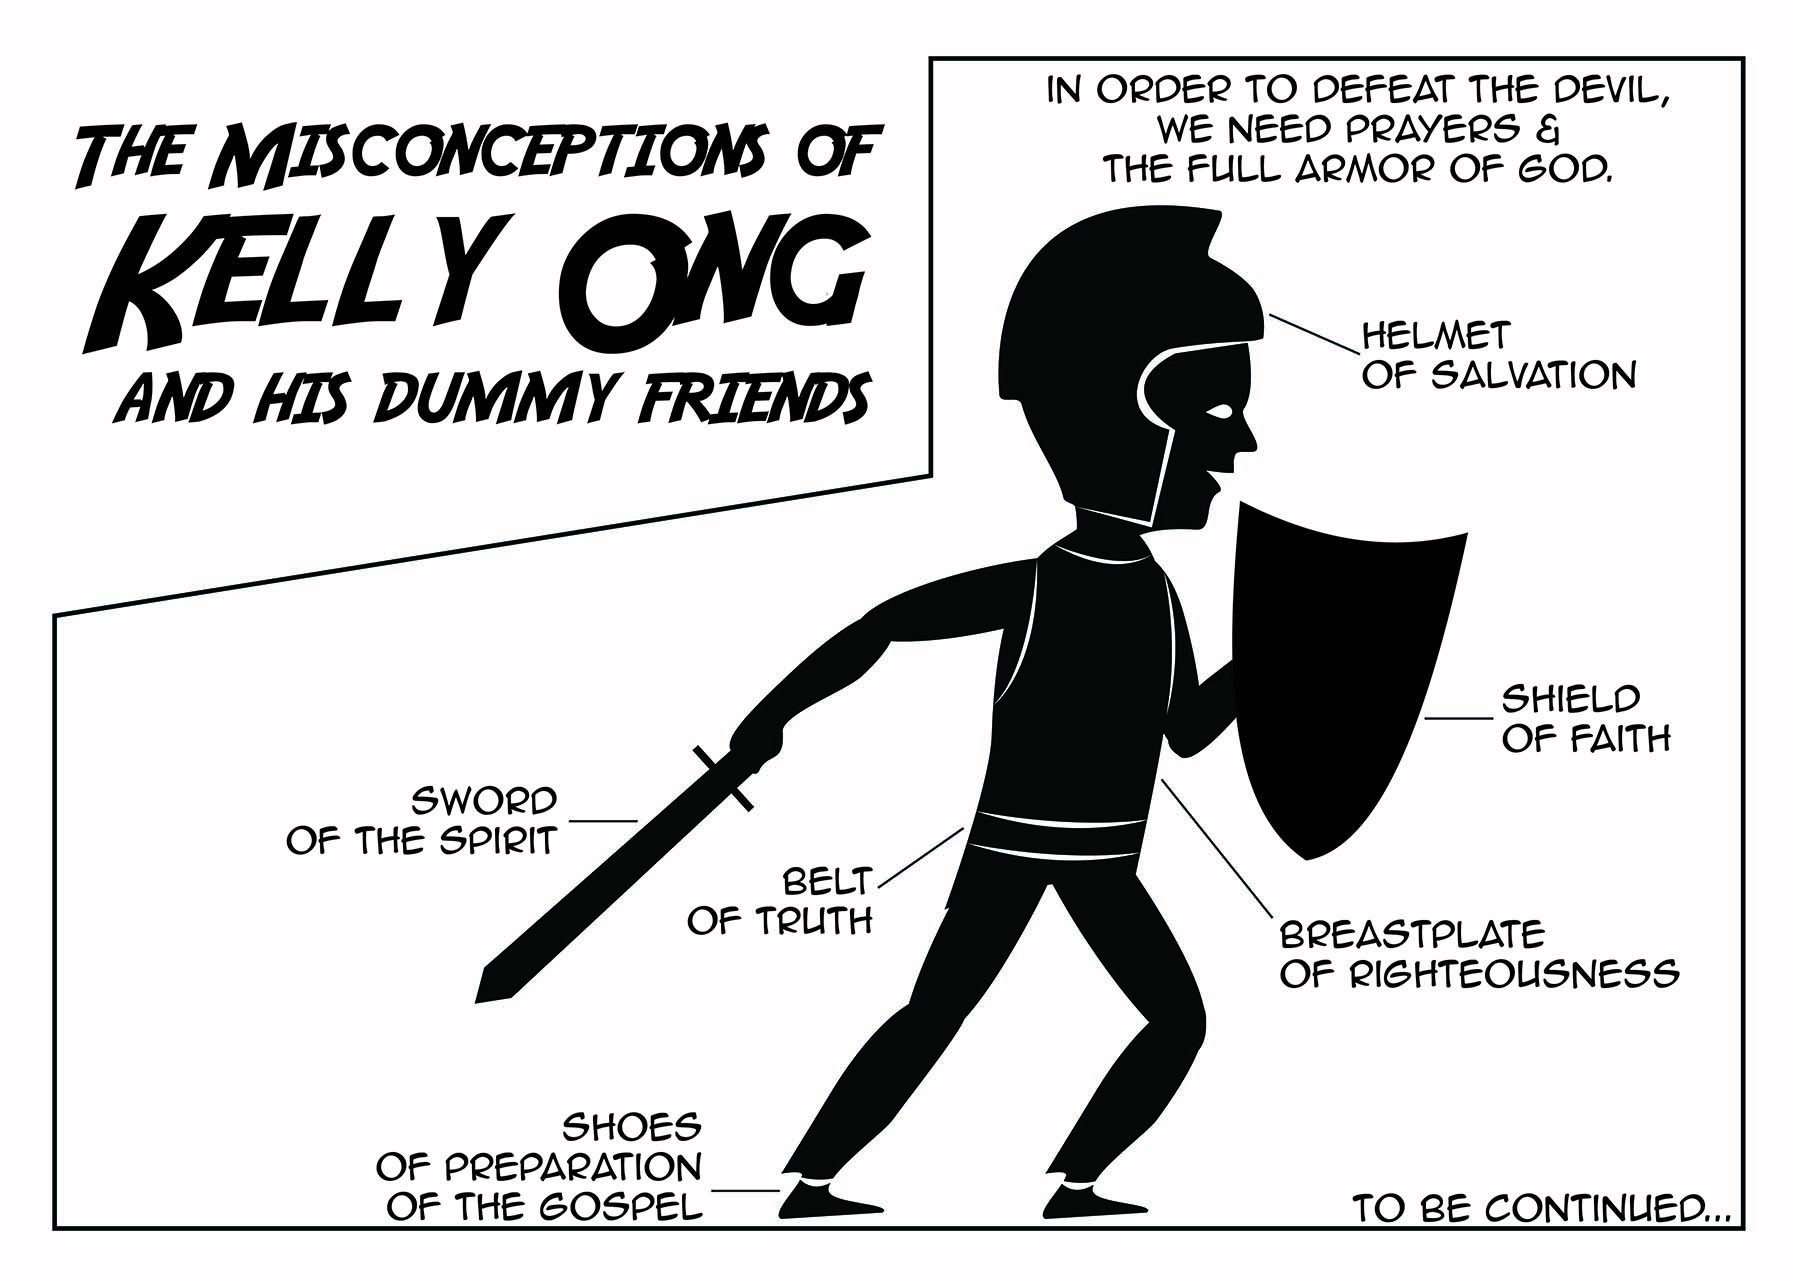 the misconceptions of kelly ong and his dummy friends comic series